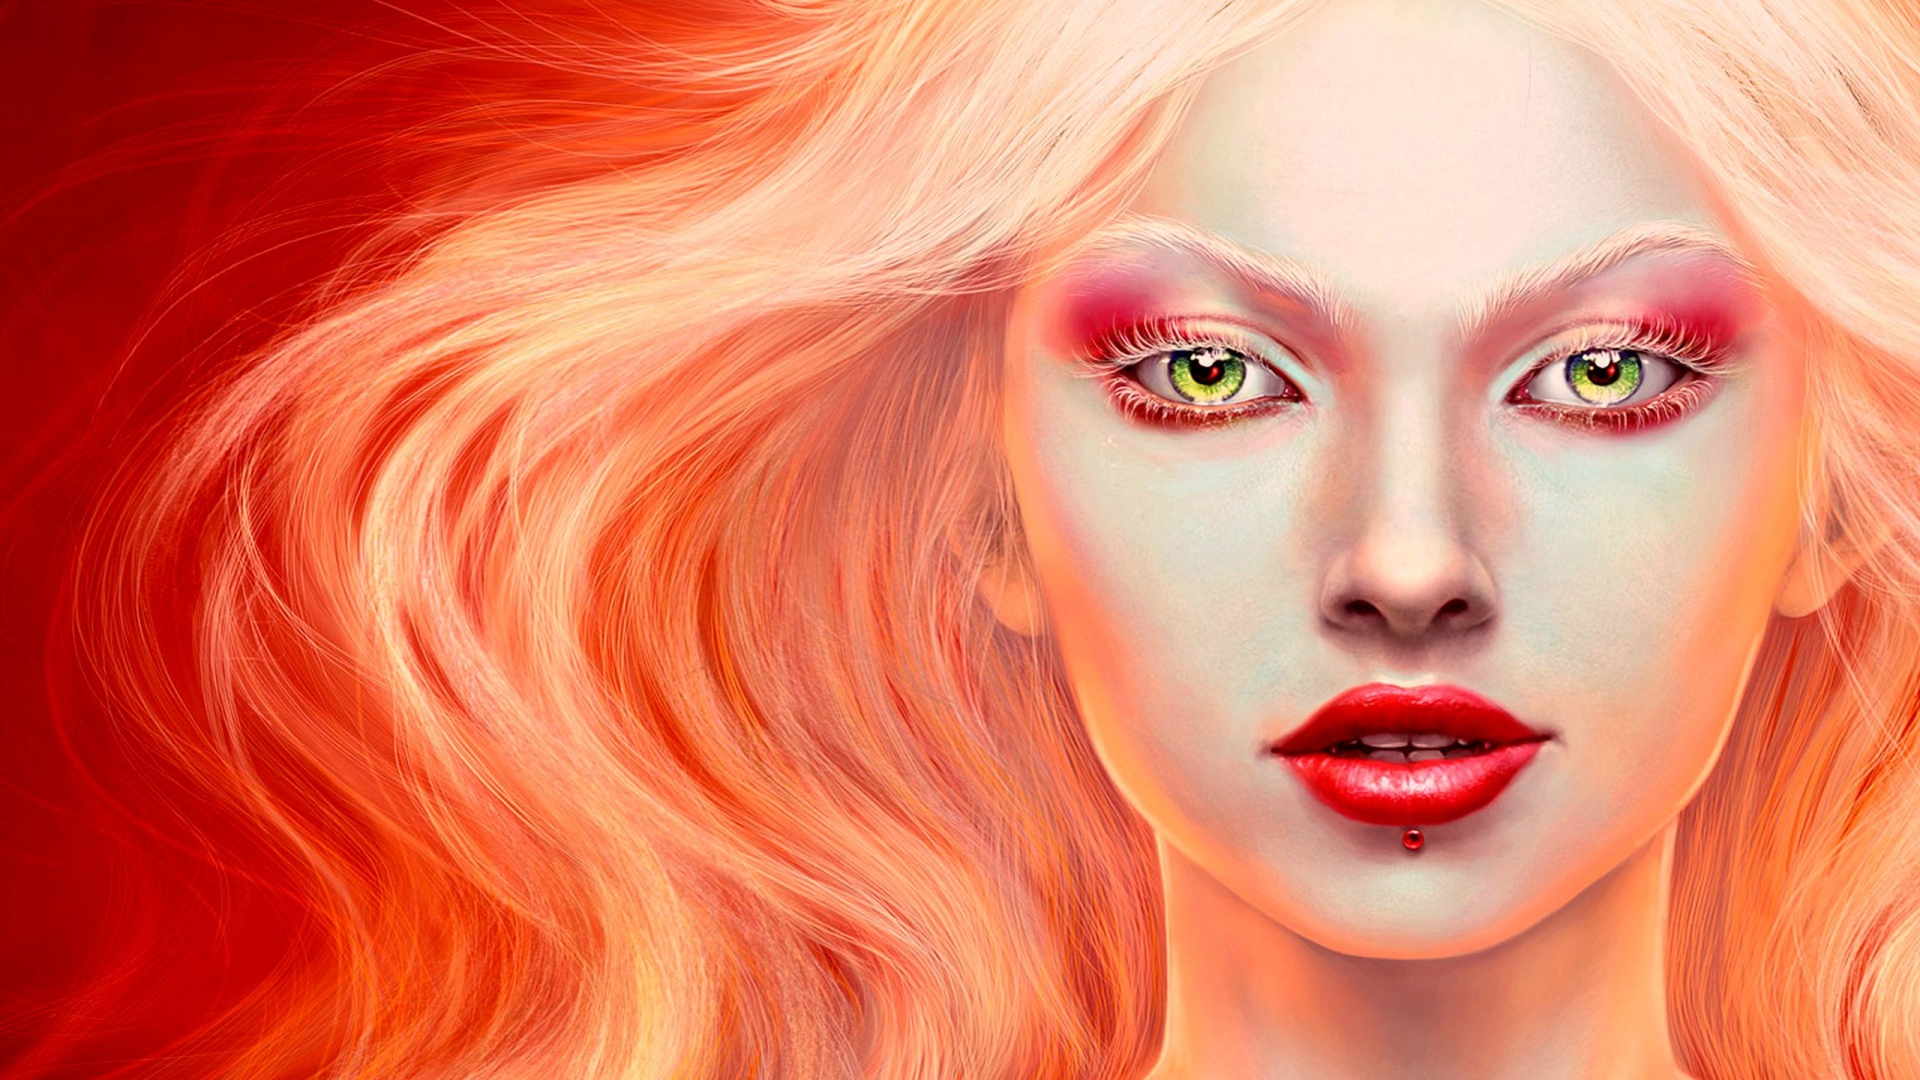 girl-blonde-lips-make-up-person-hair-1920x1080